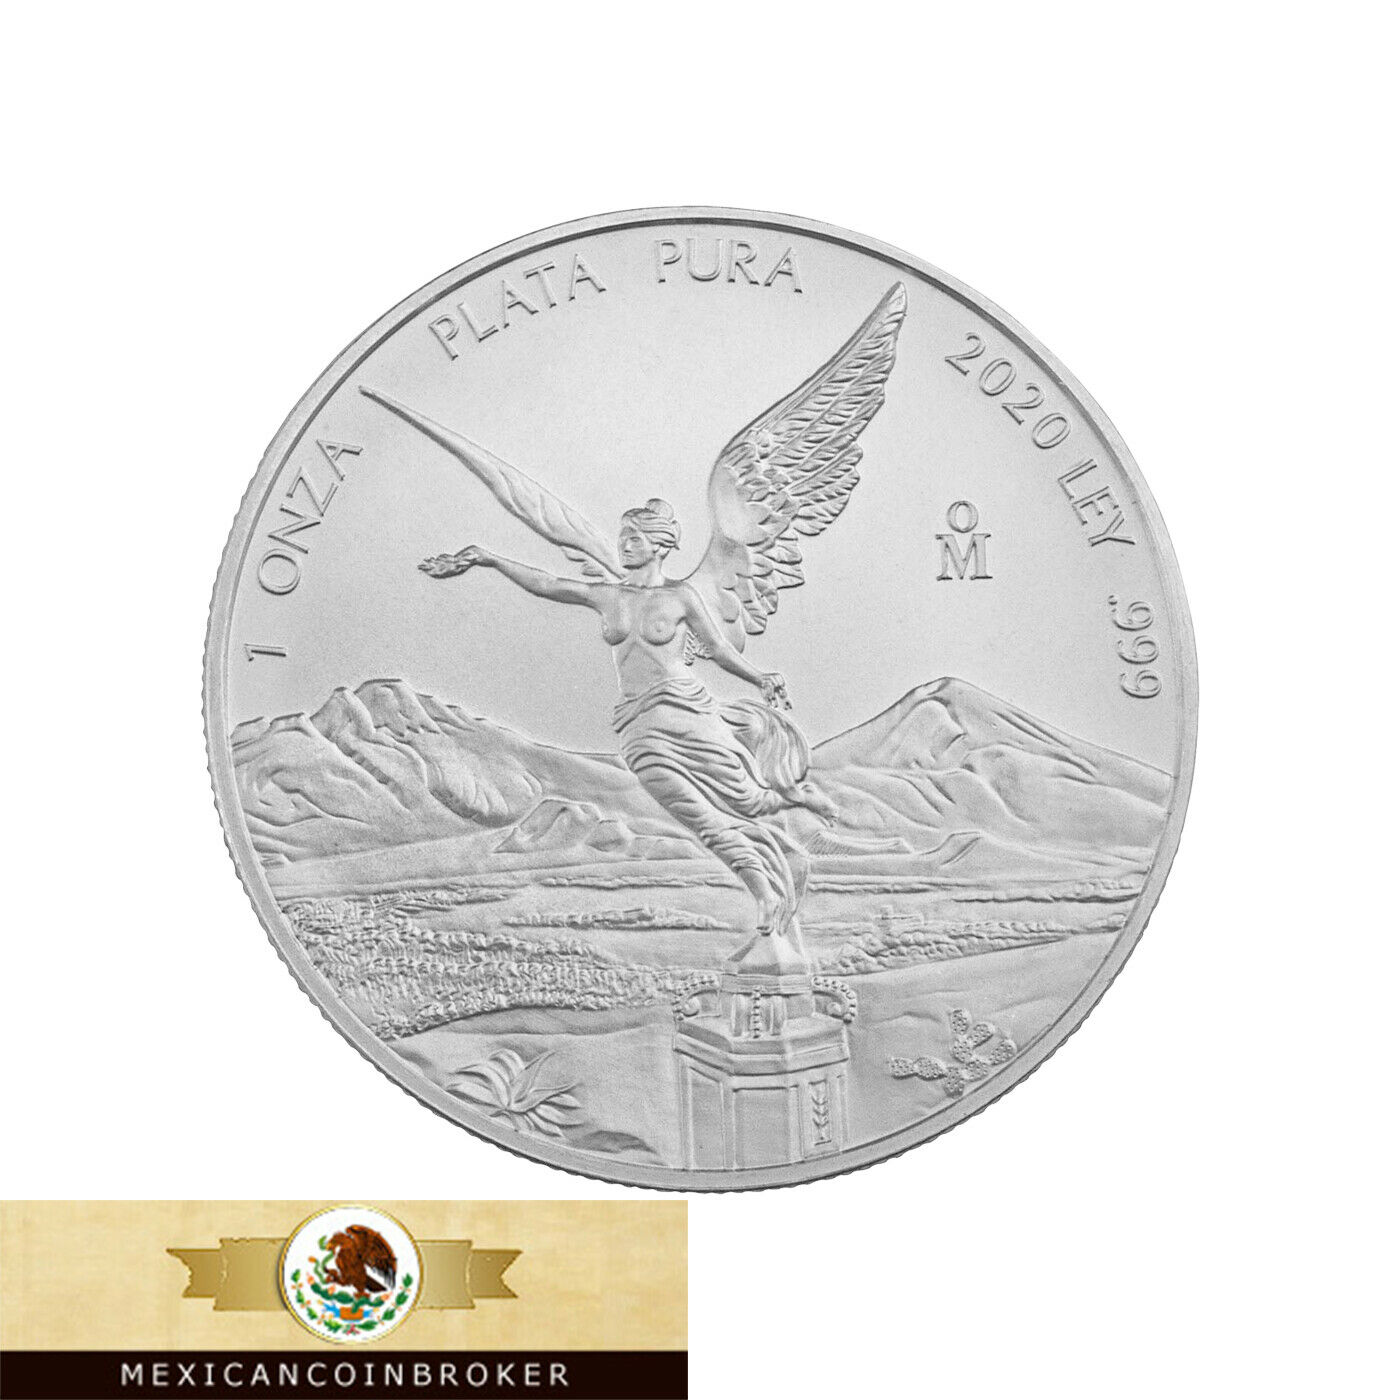 2020 Mexico 1oz Silver Libertad Onza - BU *Treasure Coin Of Mexico ™